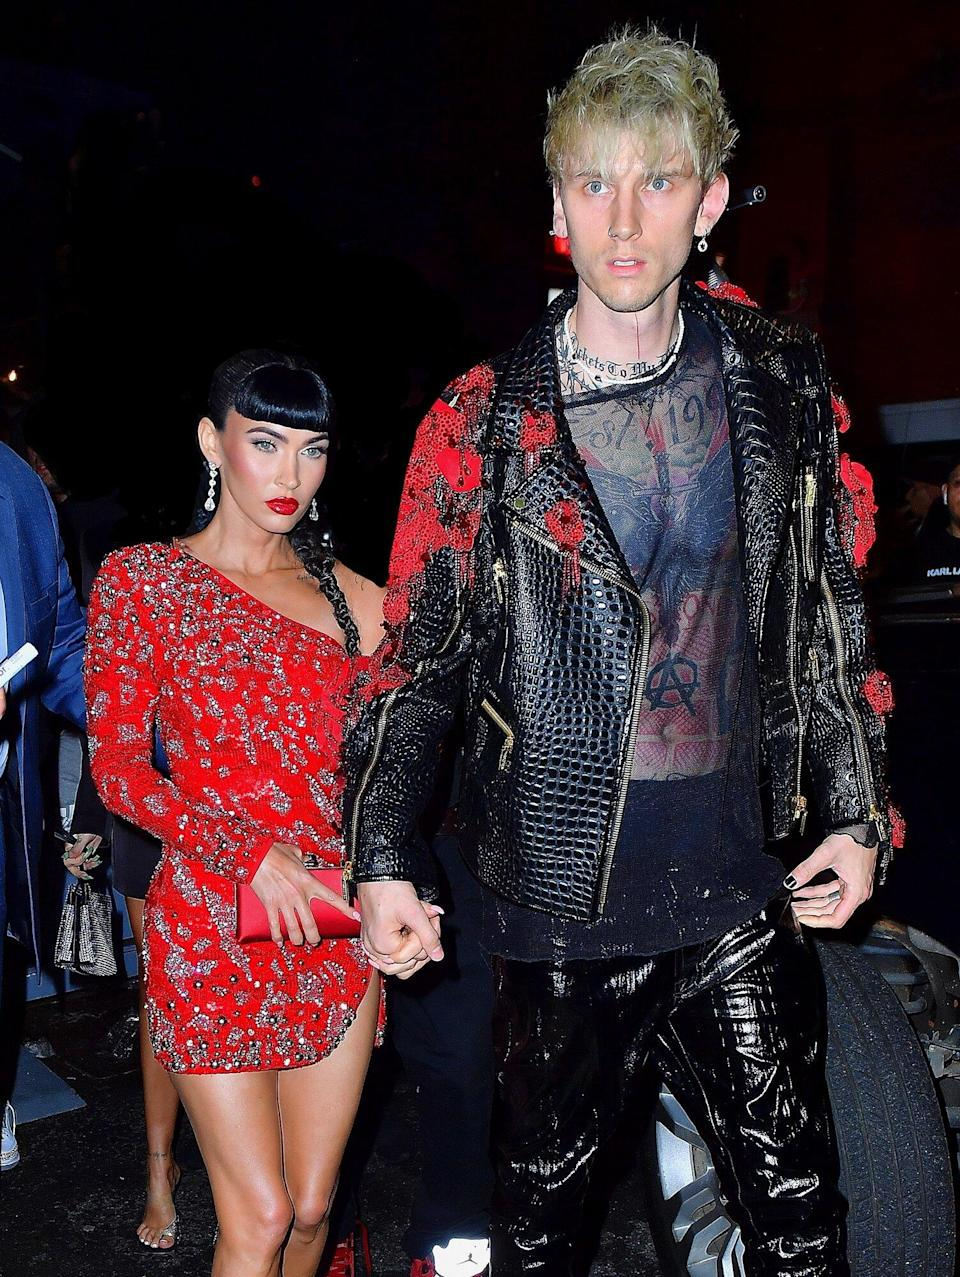 New York, NY - Machine Gun Kelly and Megan Fox look striking as they head to the Met Gala after-party at Cathédrale restaurant in NYC.